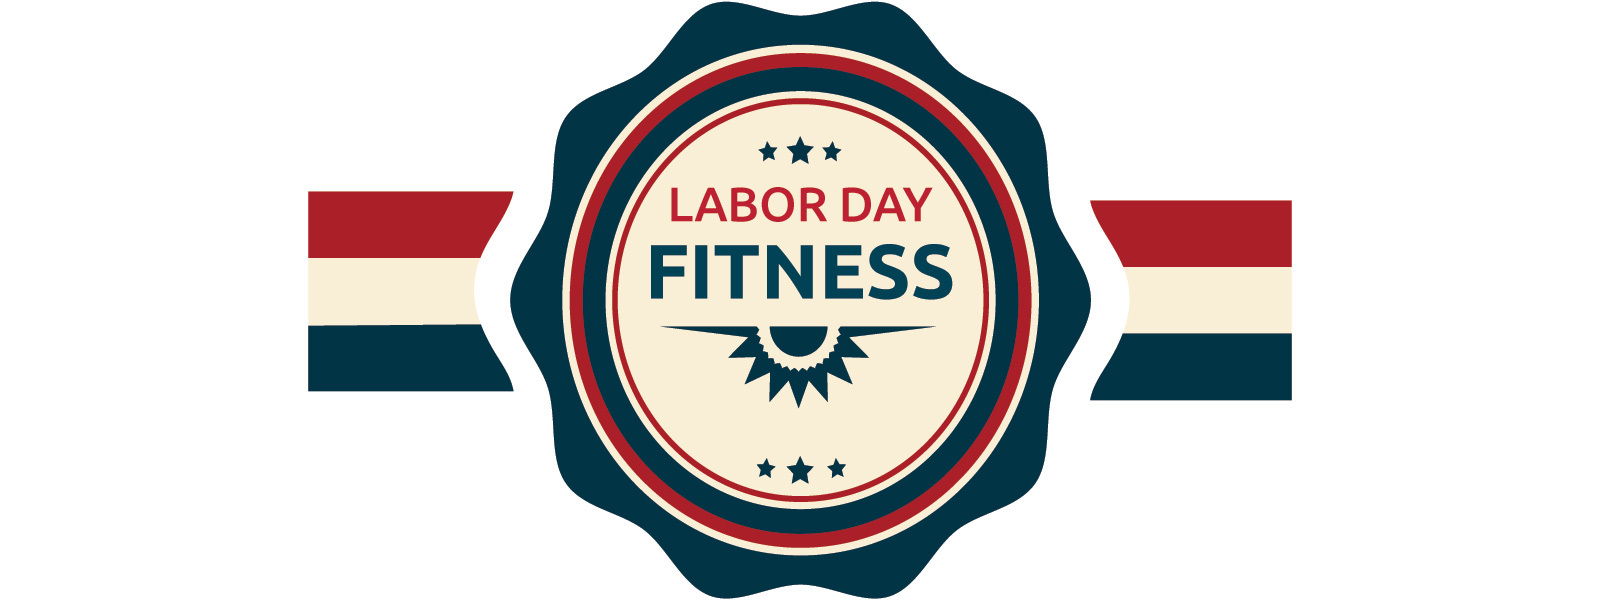 Labor day fitness jcc rockland labor day fitness buycottarizona Choice Image